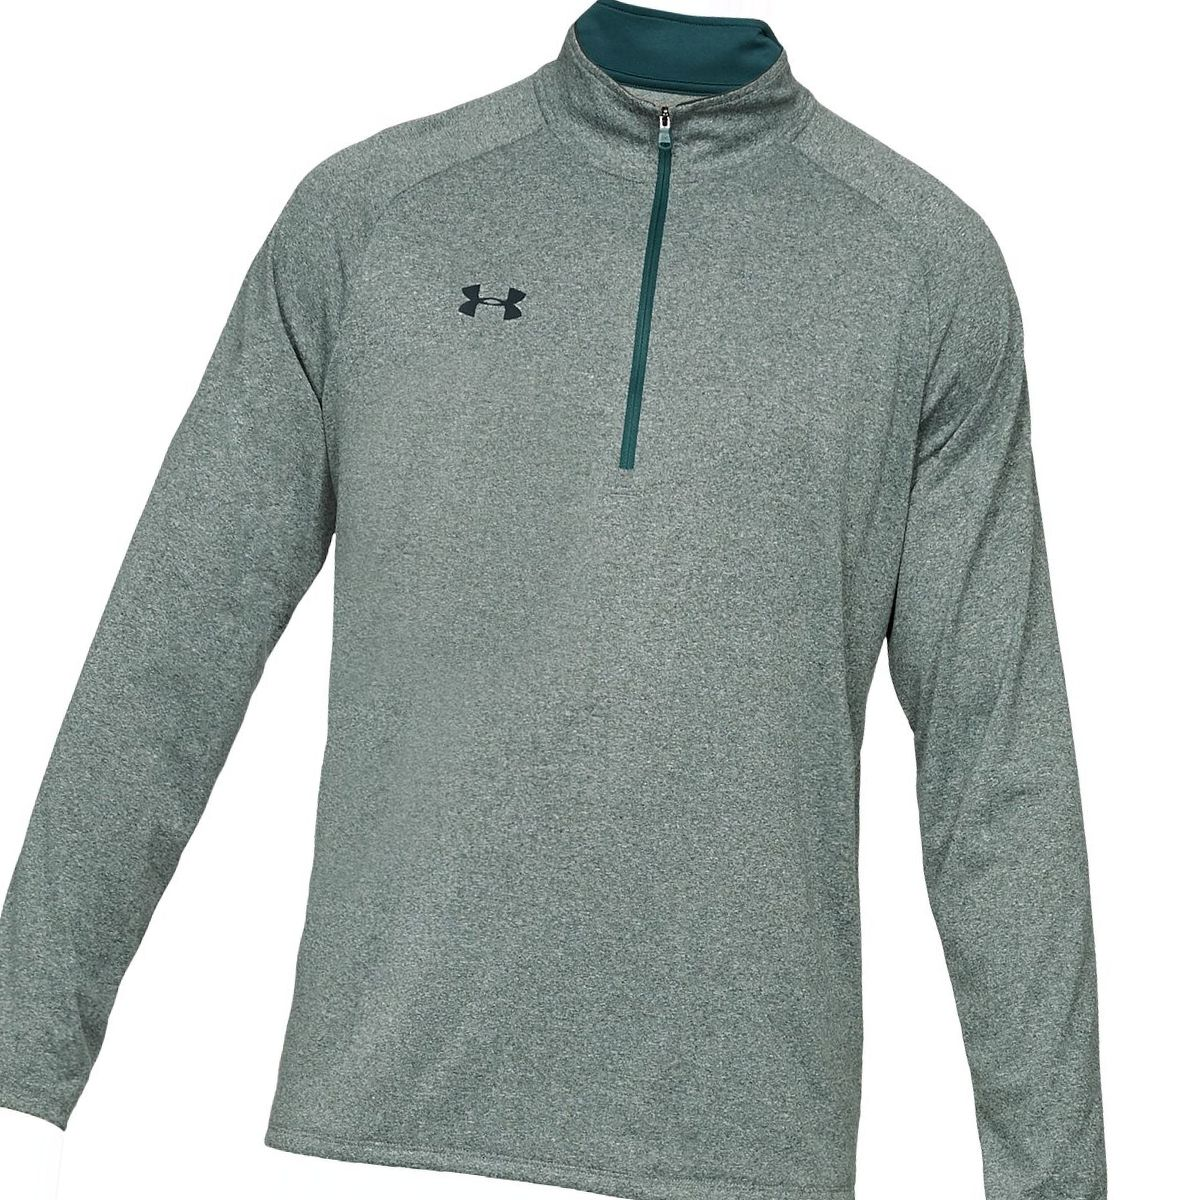 Under Armour Tech 2.0 1/2-Zip Shirt - Men's